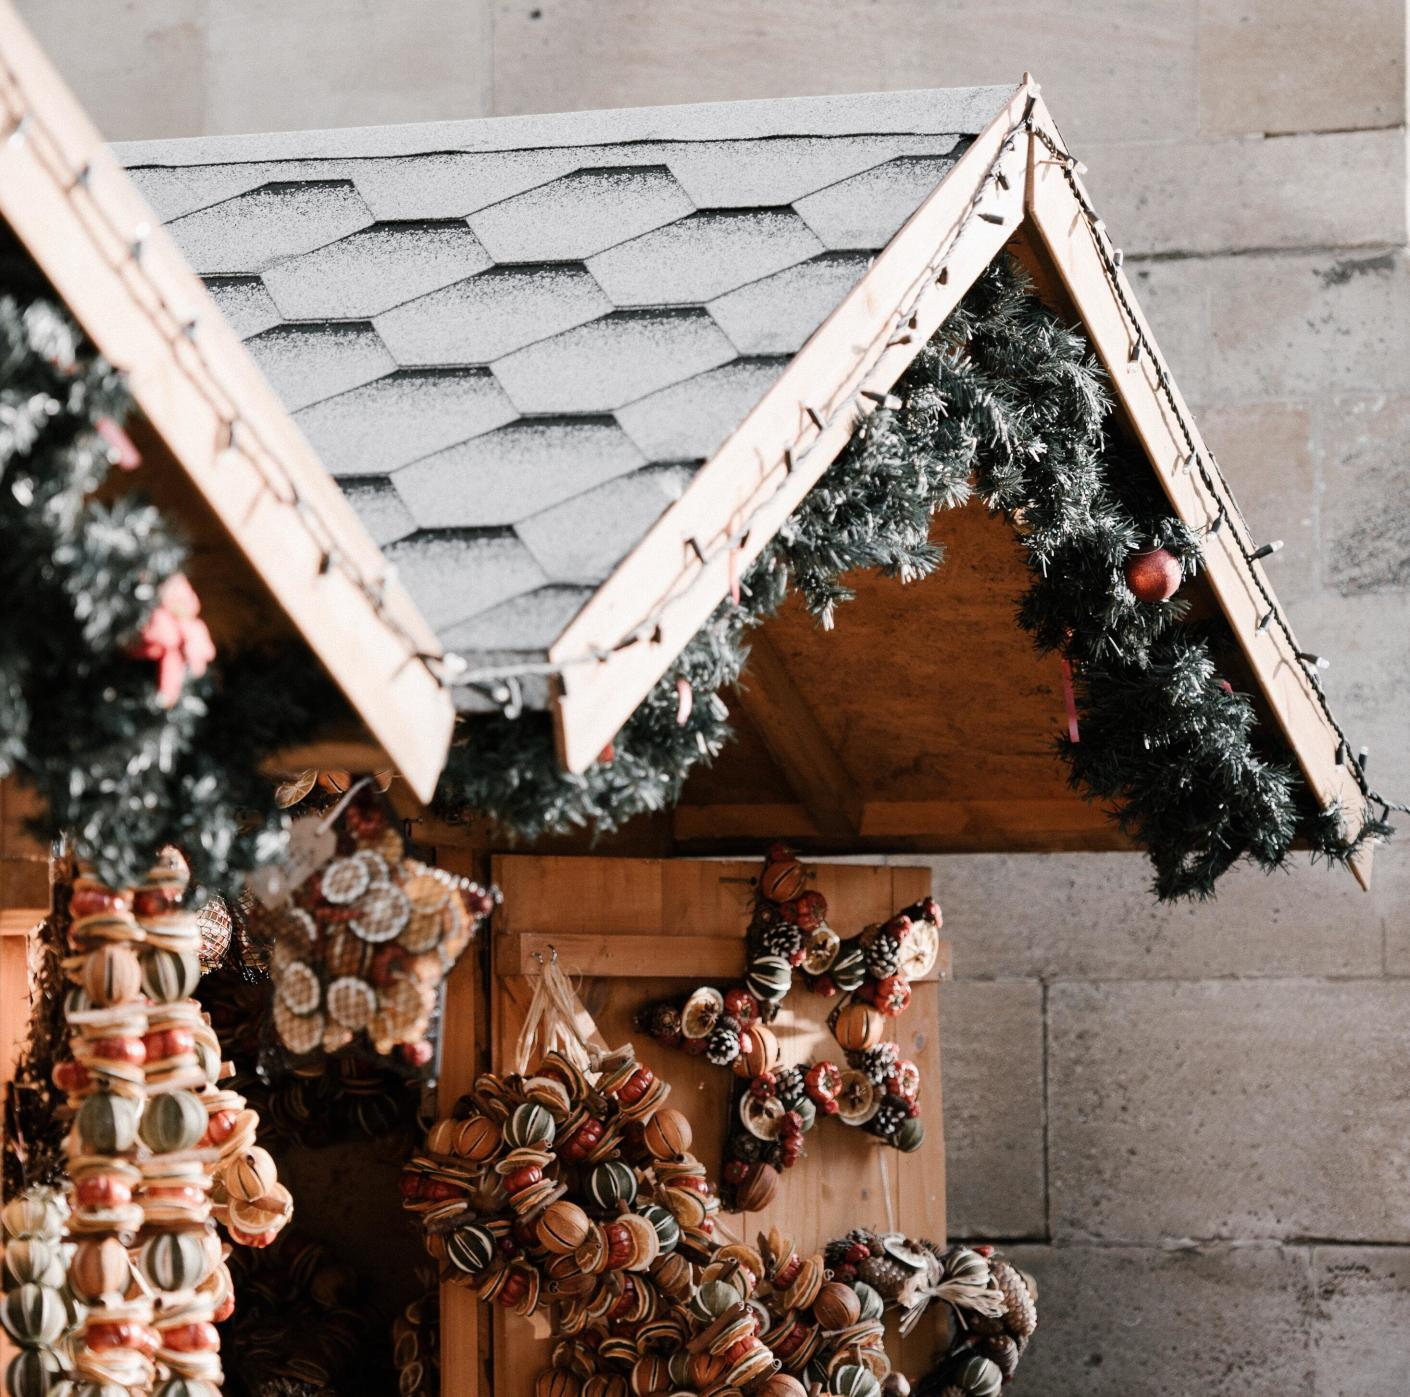 Souvenirs displayed in a close-up of a house-front in a Christmas market